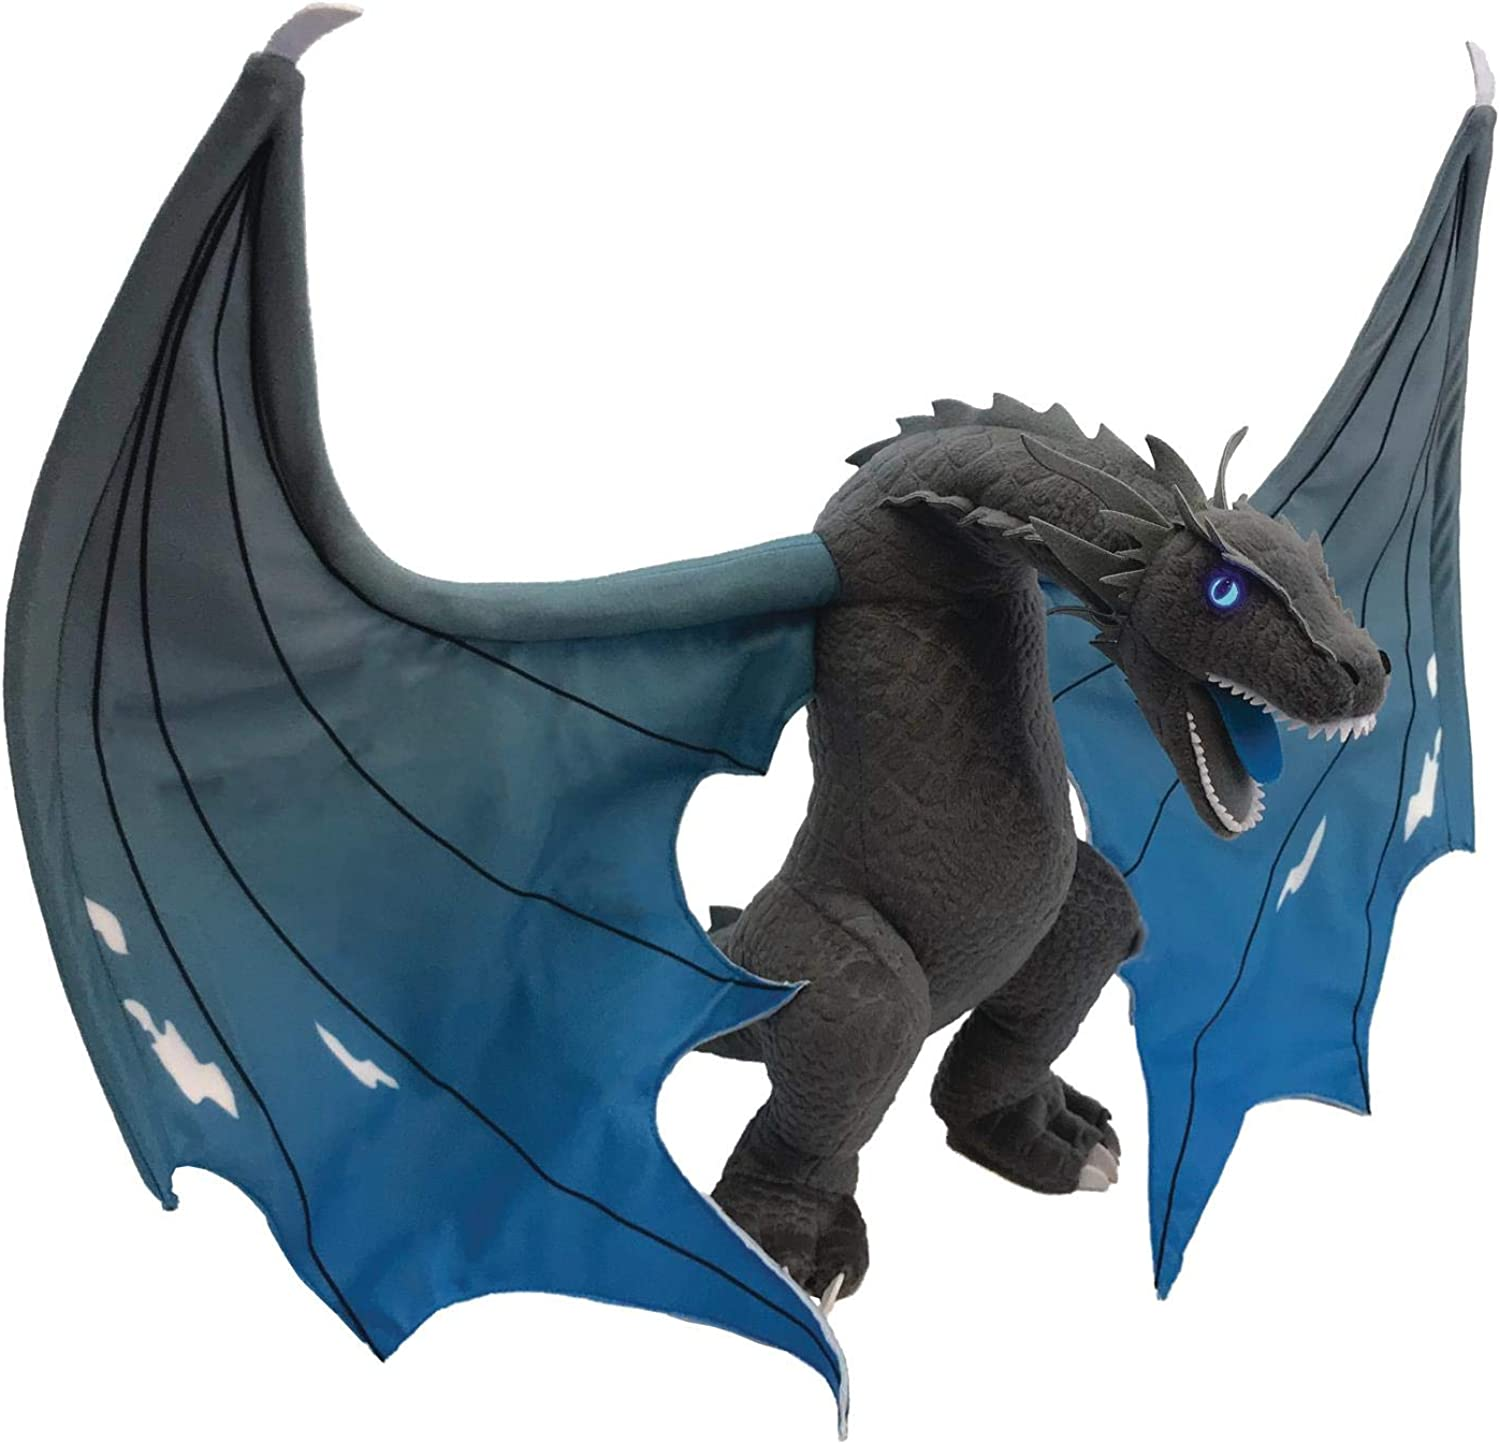 Factory Entertainment Game of Thrones ICY Viserion Jumbo Dragon Plush, Multicolor